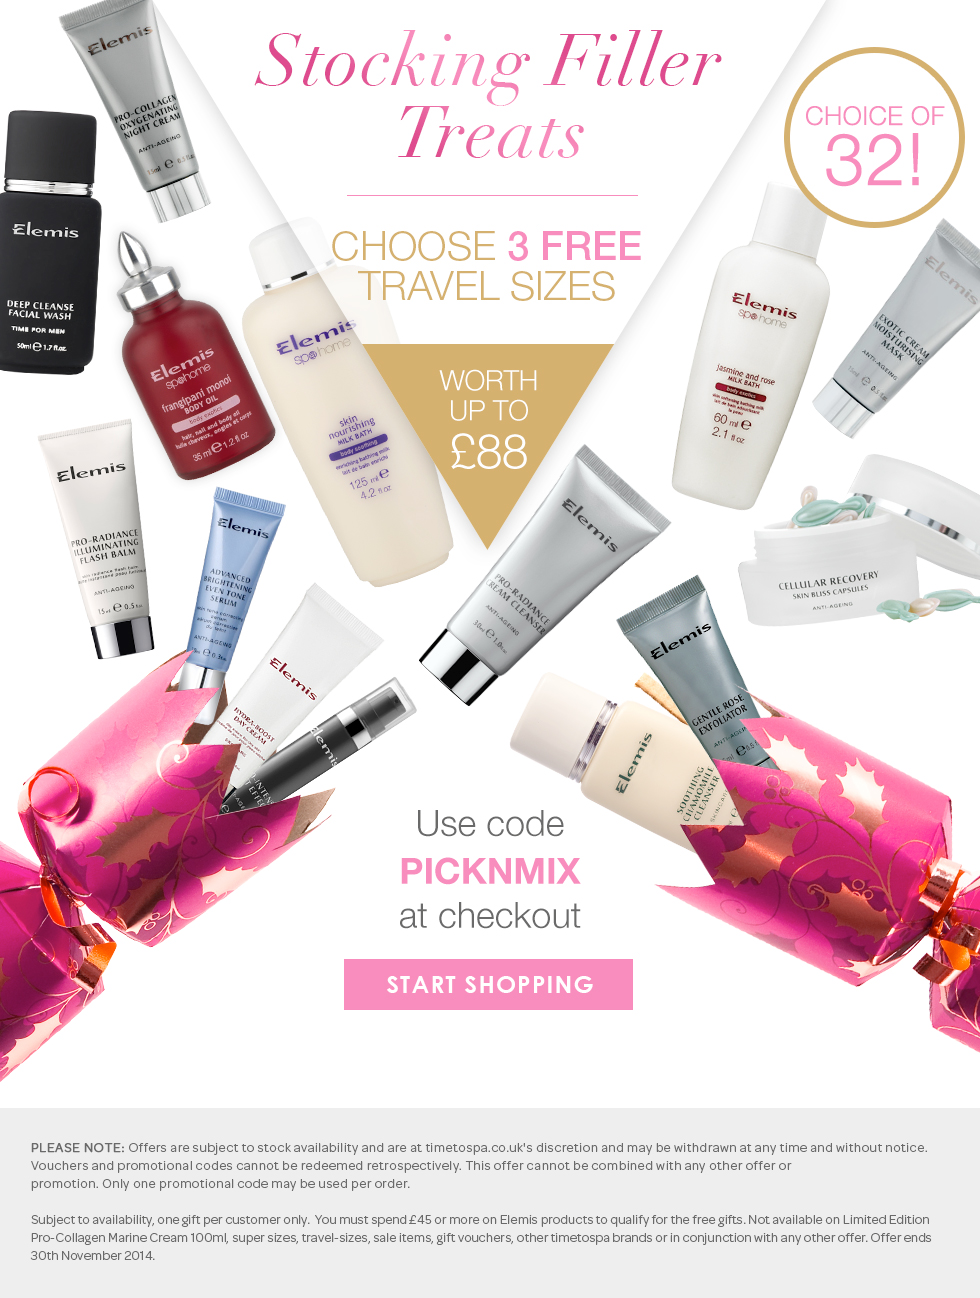 Choose 3 FREE ELEMIS travel sizes from a choice of 32 when you spend £45